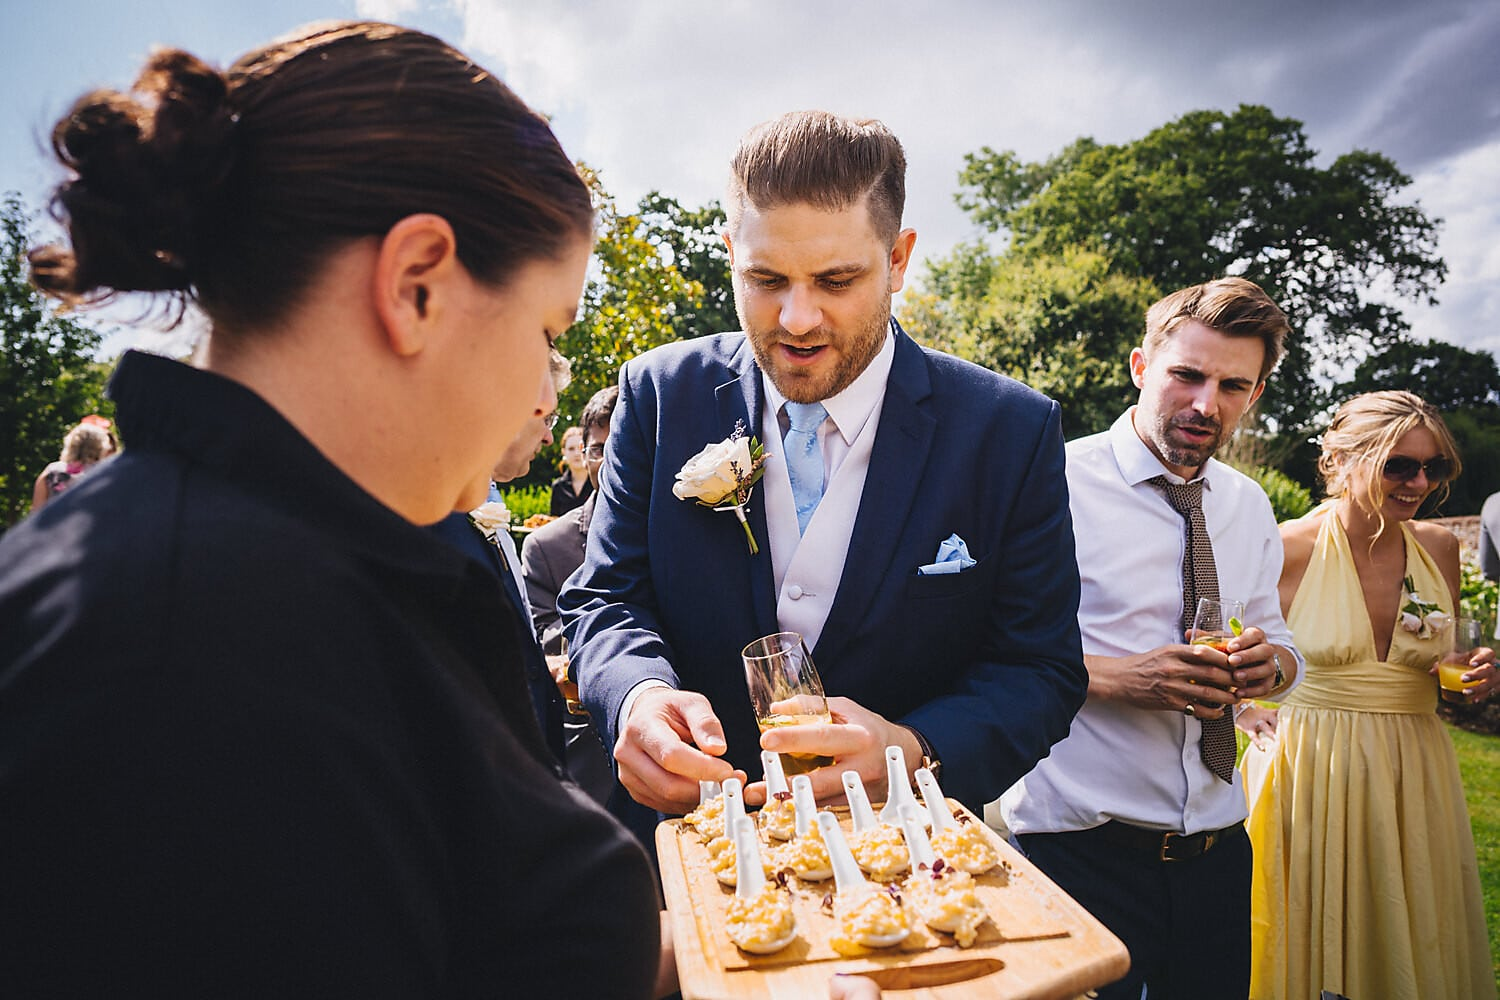 Wedding guests reaching for canapés